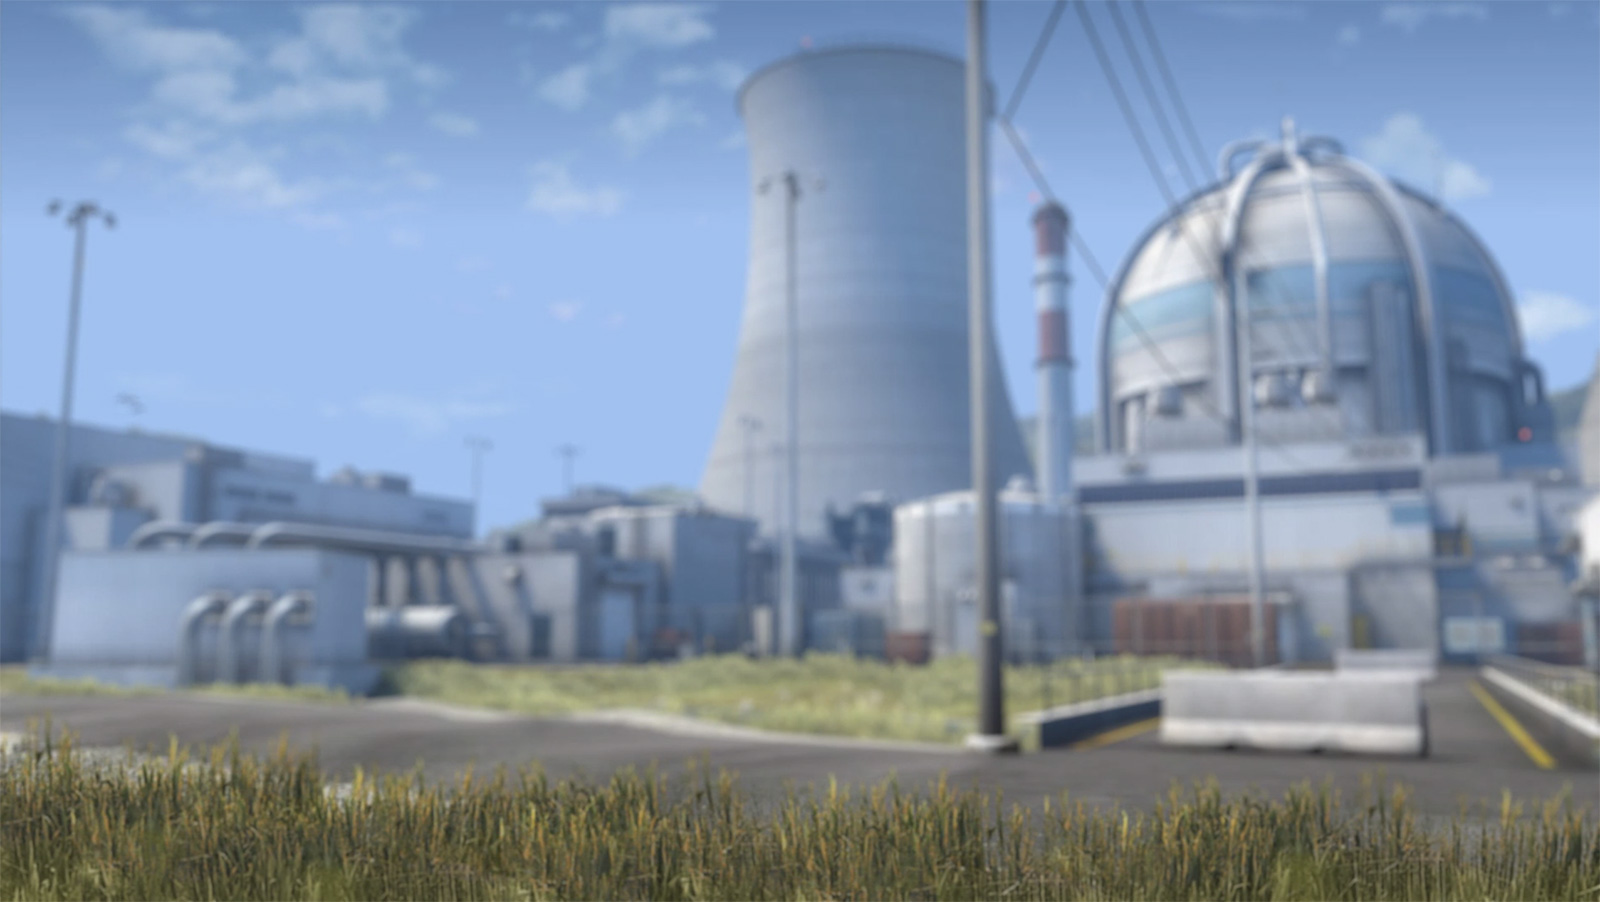 counter strike global offensive panoramic view